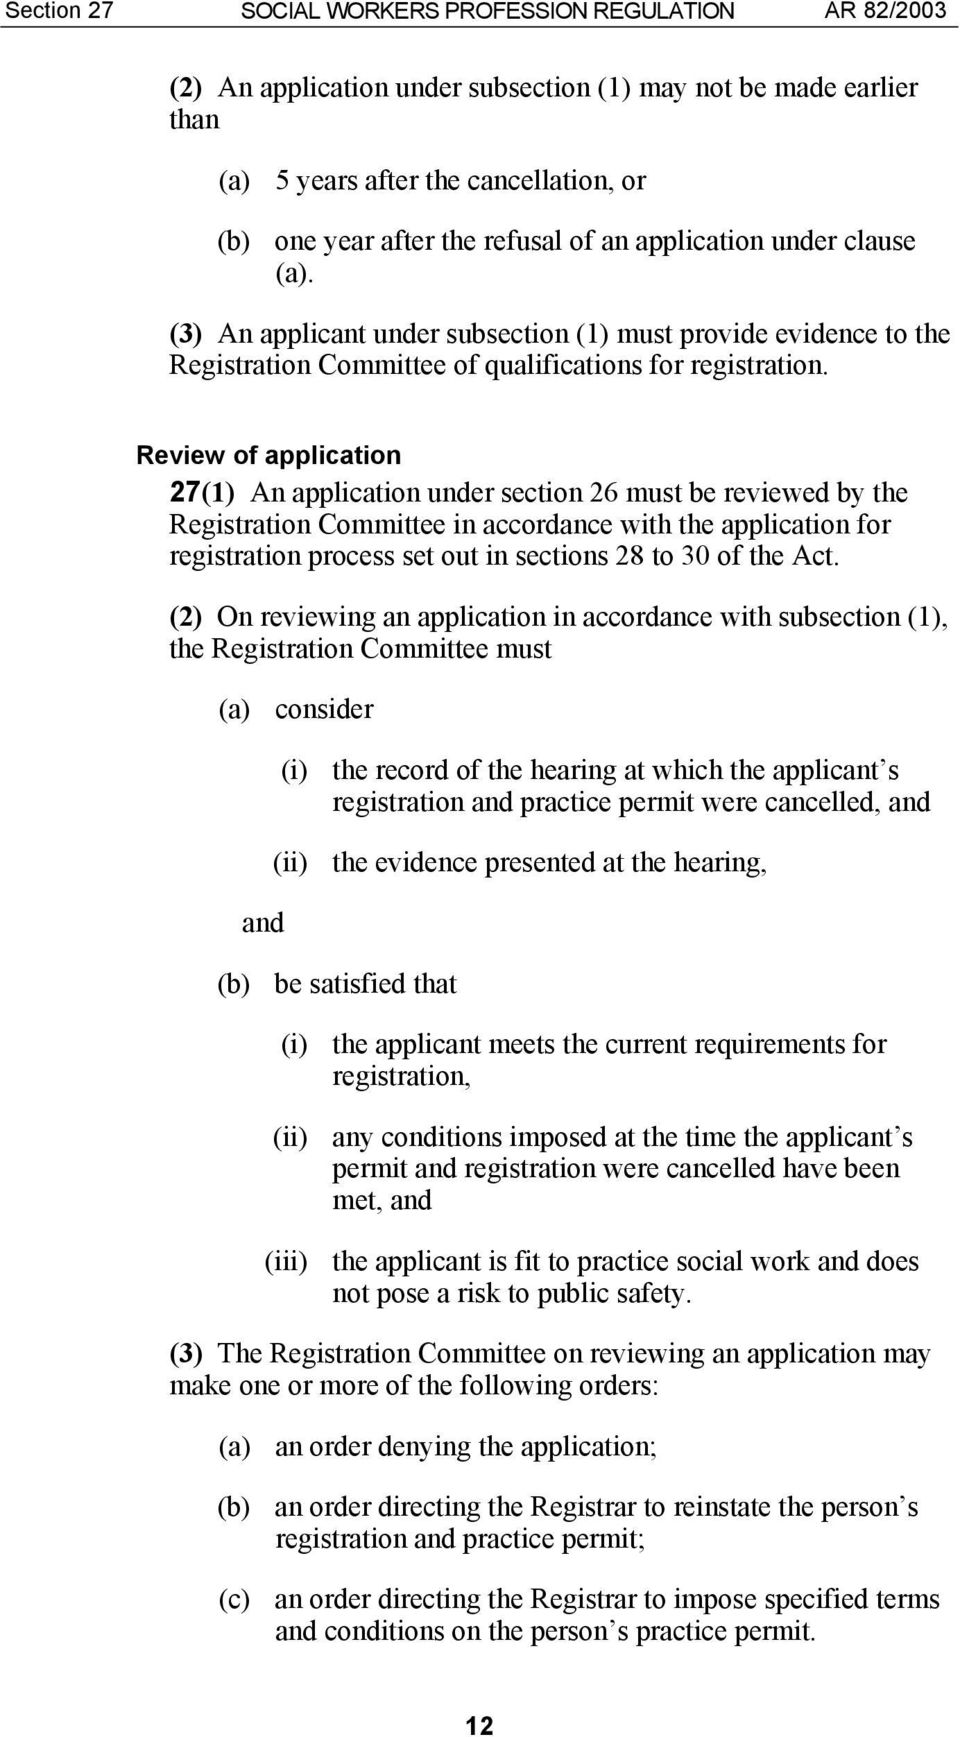 Review of application 27(1) An application under section 26 must be reviewed by the Registration Committee in accordance with the application for registration process set out in sections 28 to 30 of